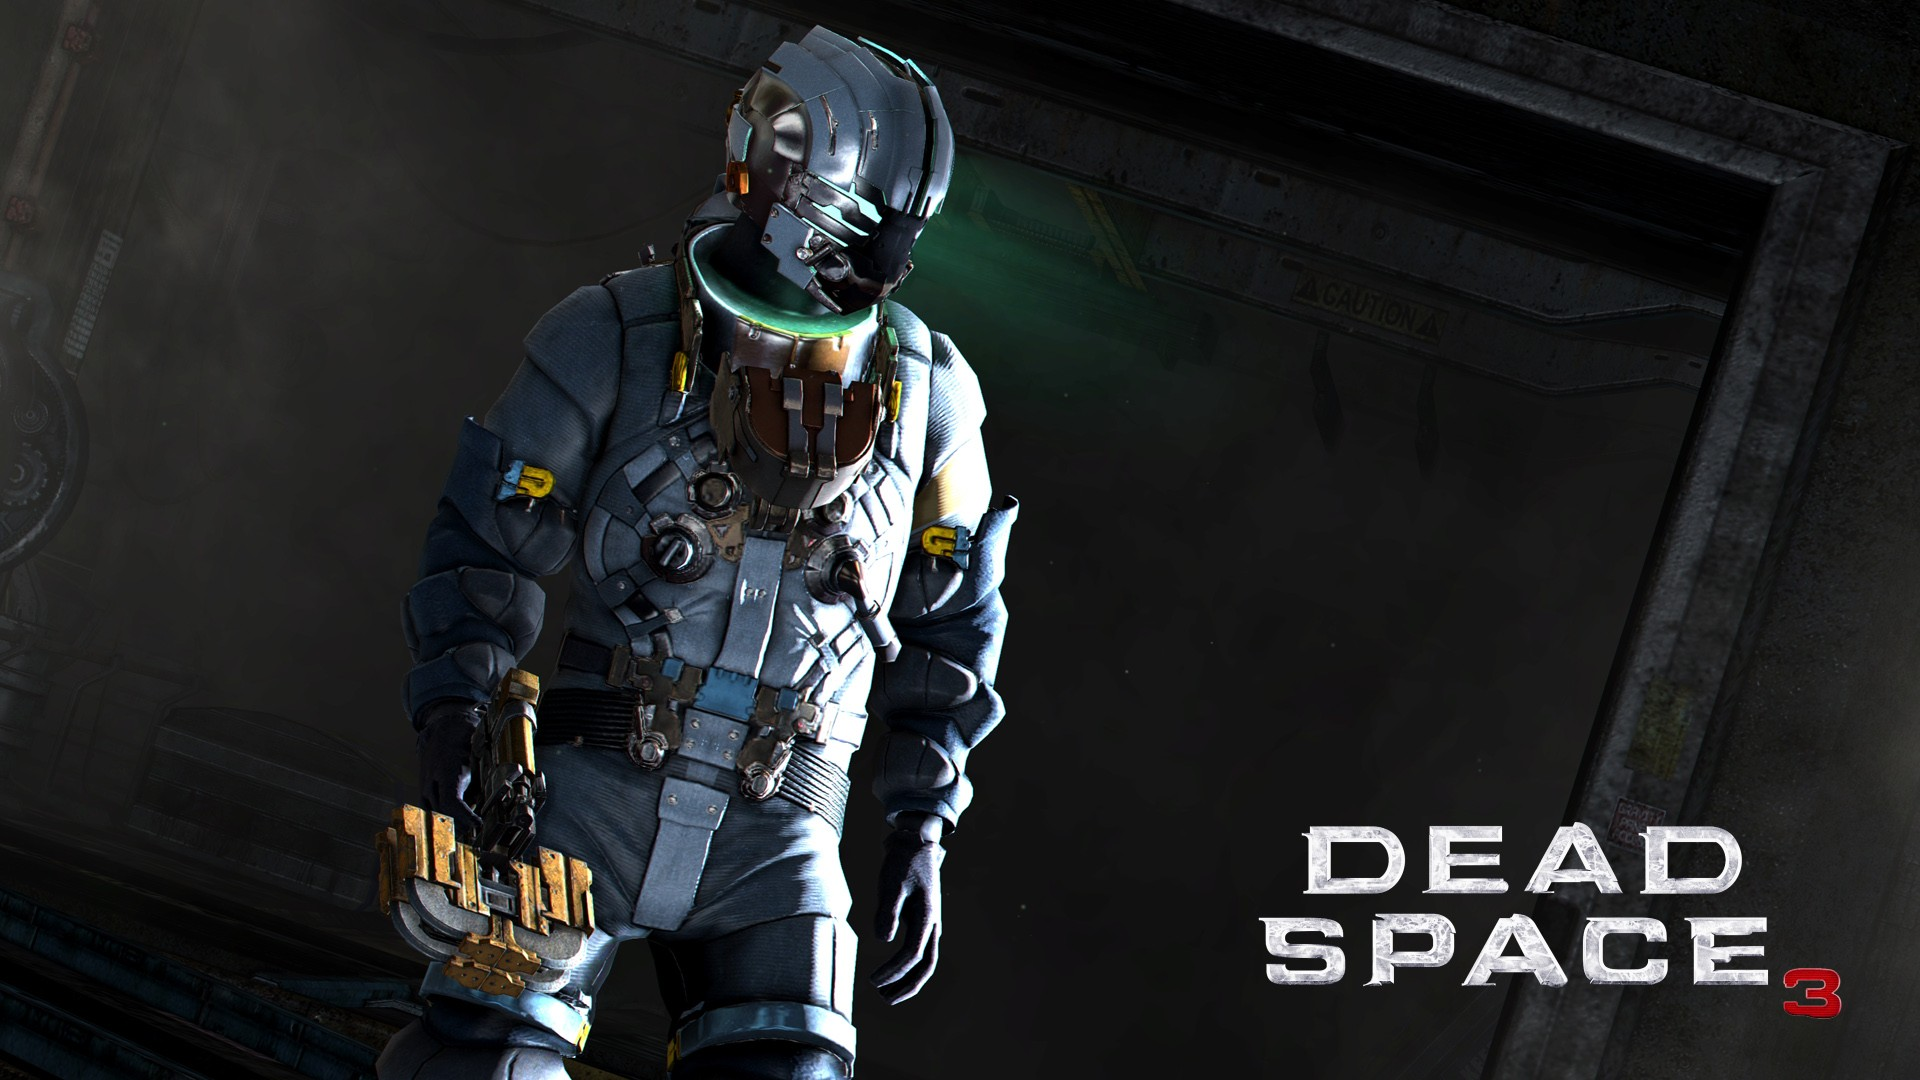 Dead Space 2 Dead Space 3 And More Games Are Joining Backward